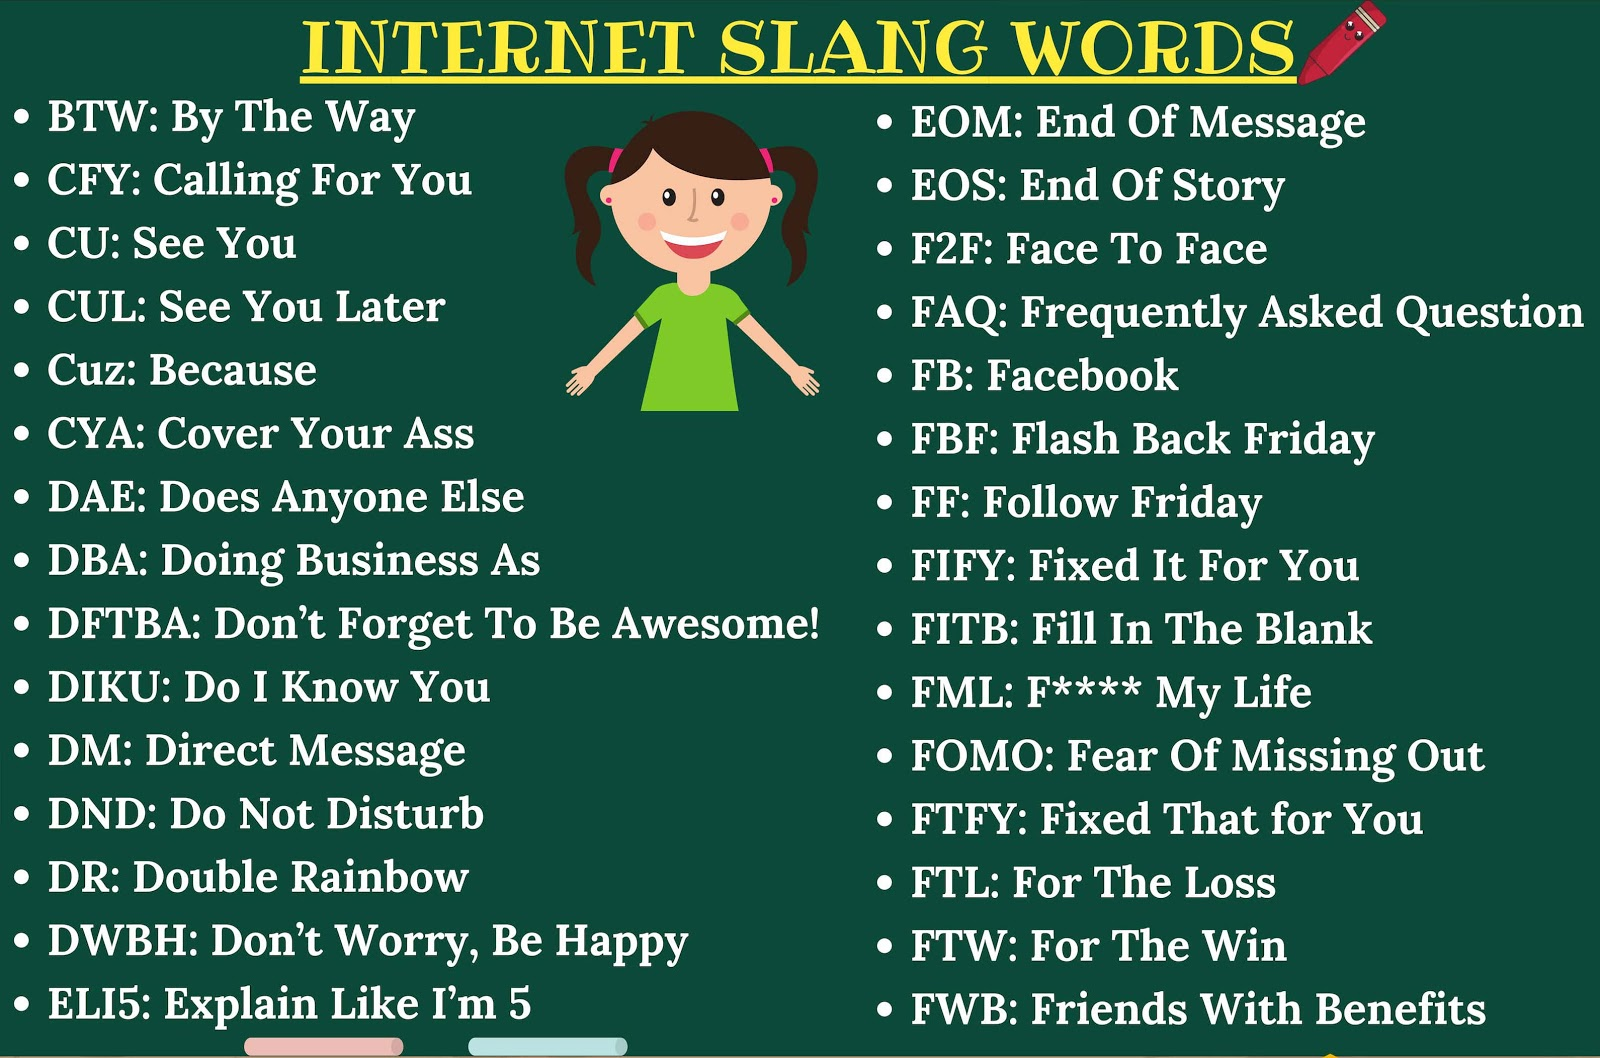 200 Trendy Internet Slang Words You Need To Know